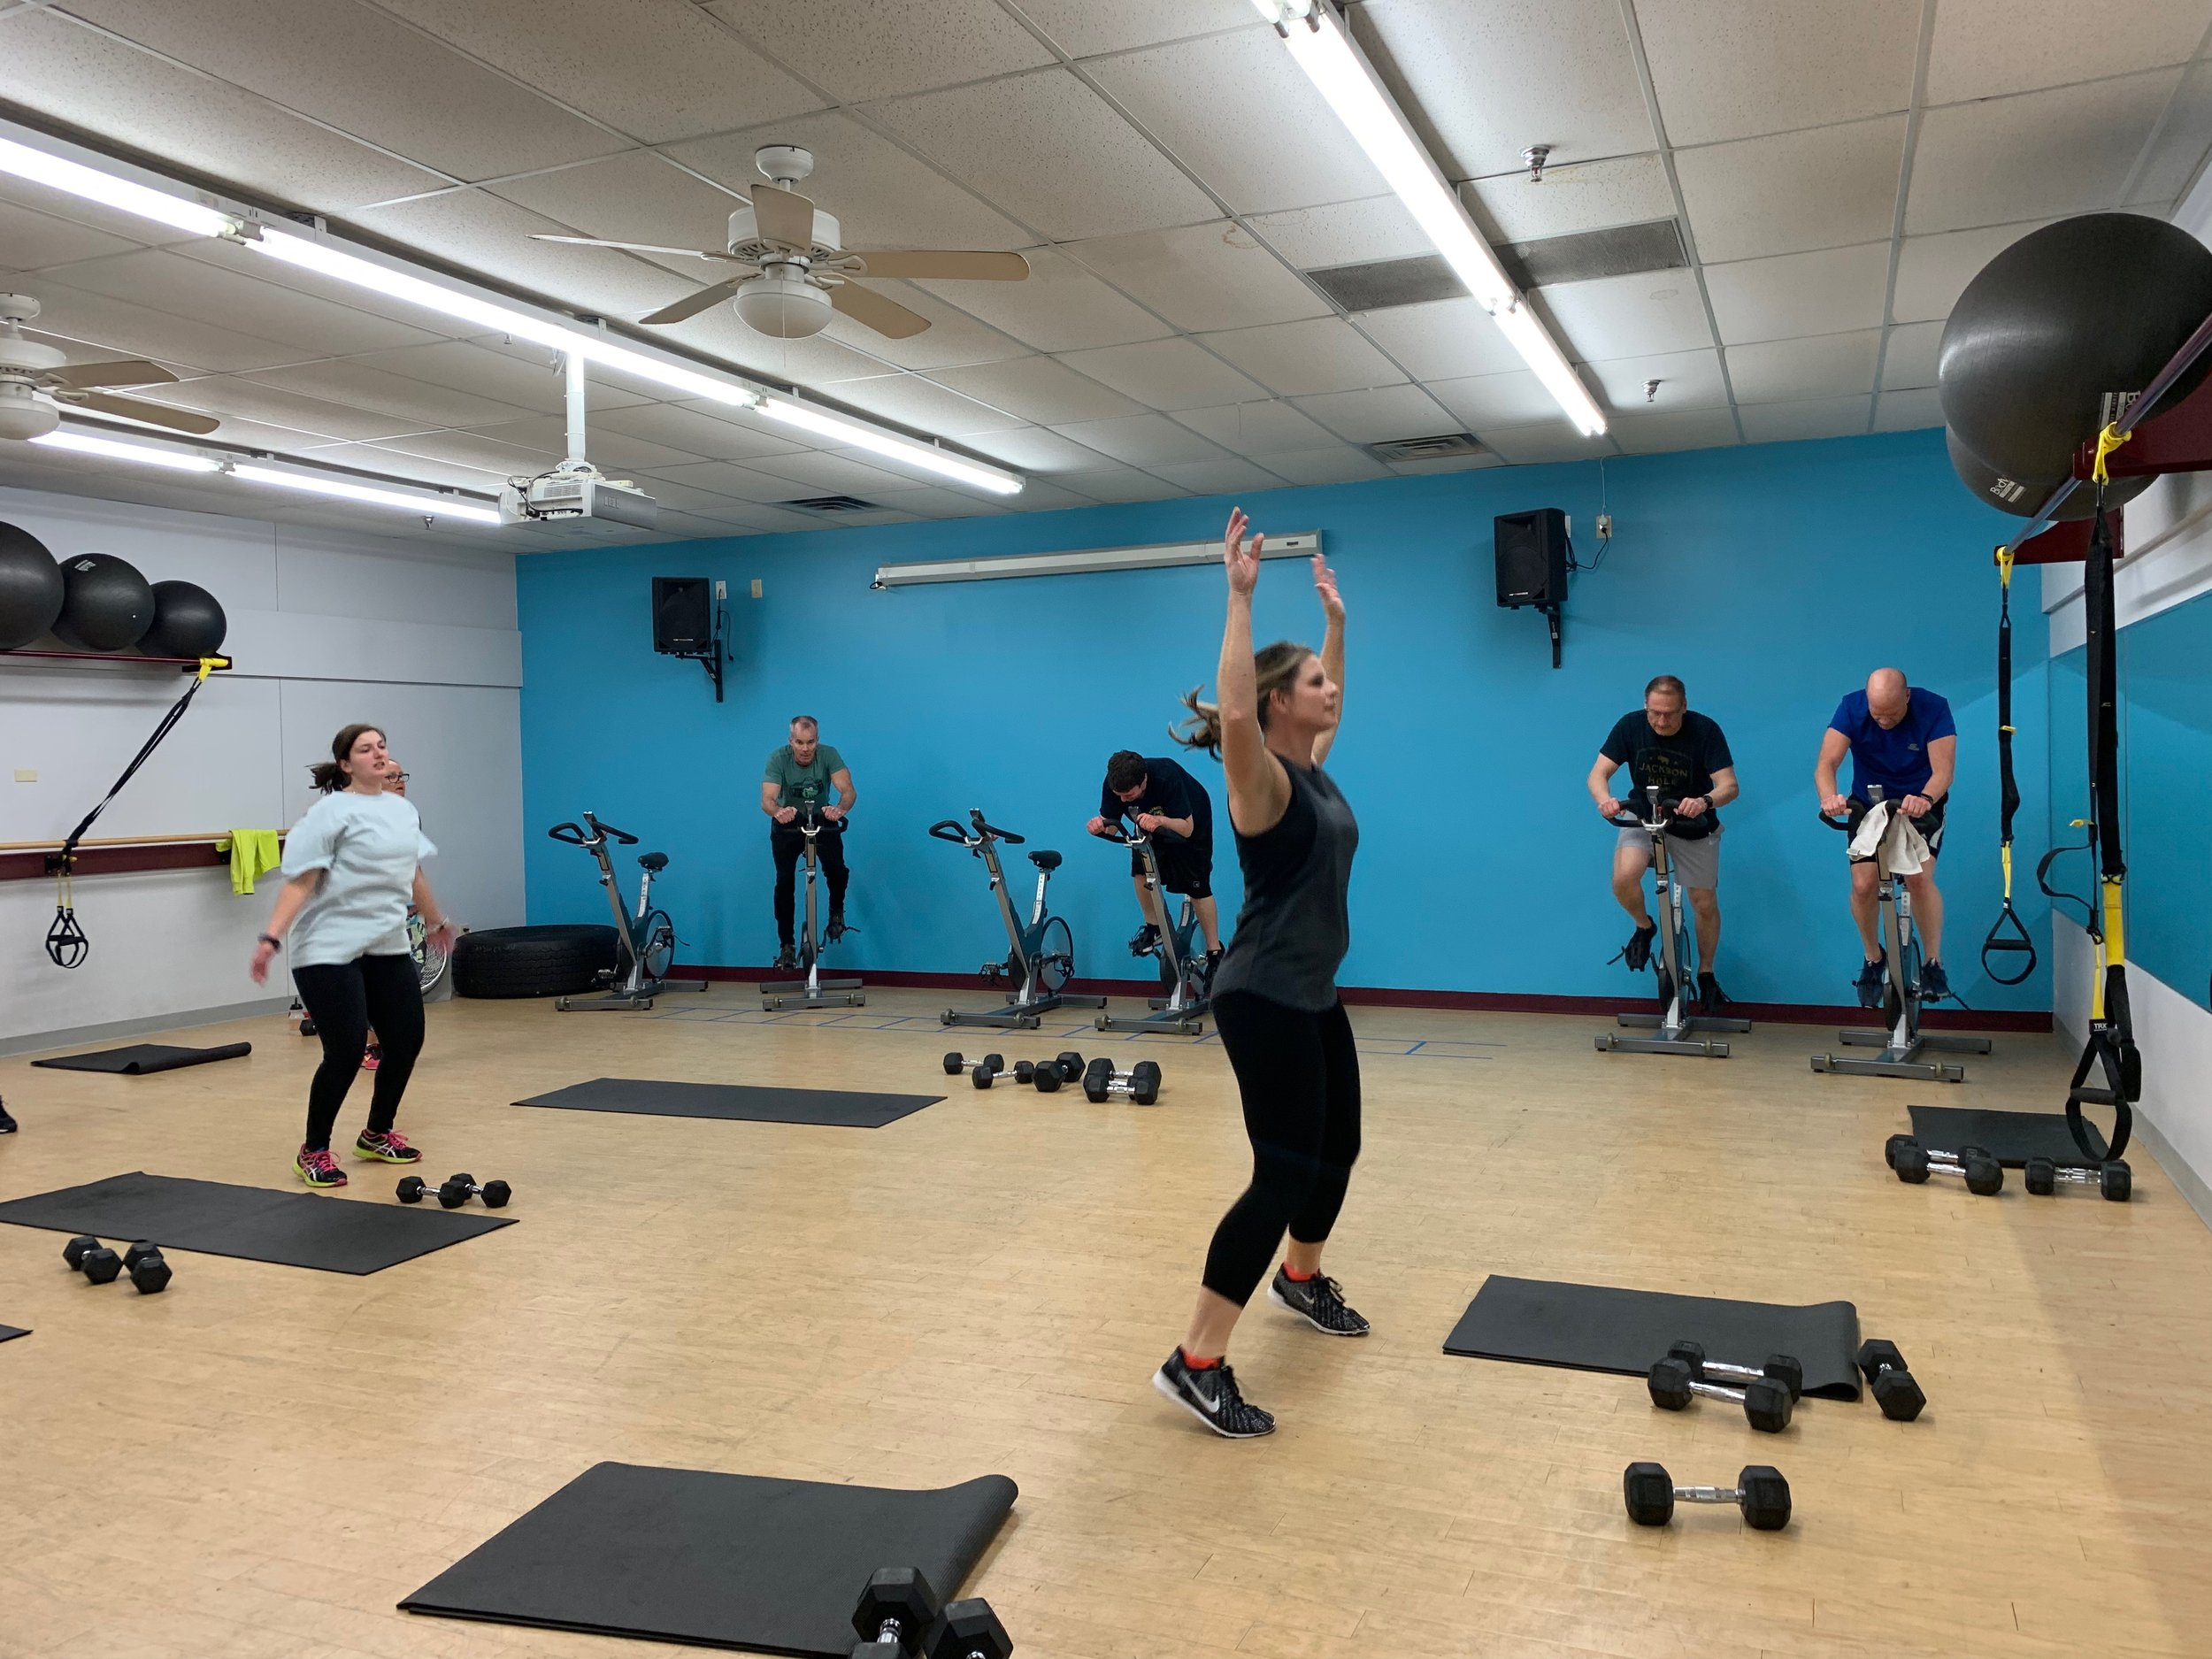 Interested in Group Fitness Classes? - Without the monthly gym membership fees?